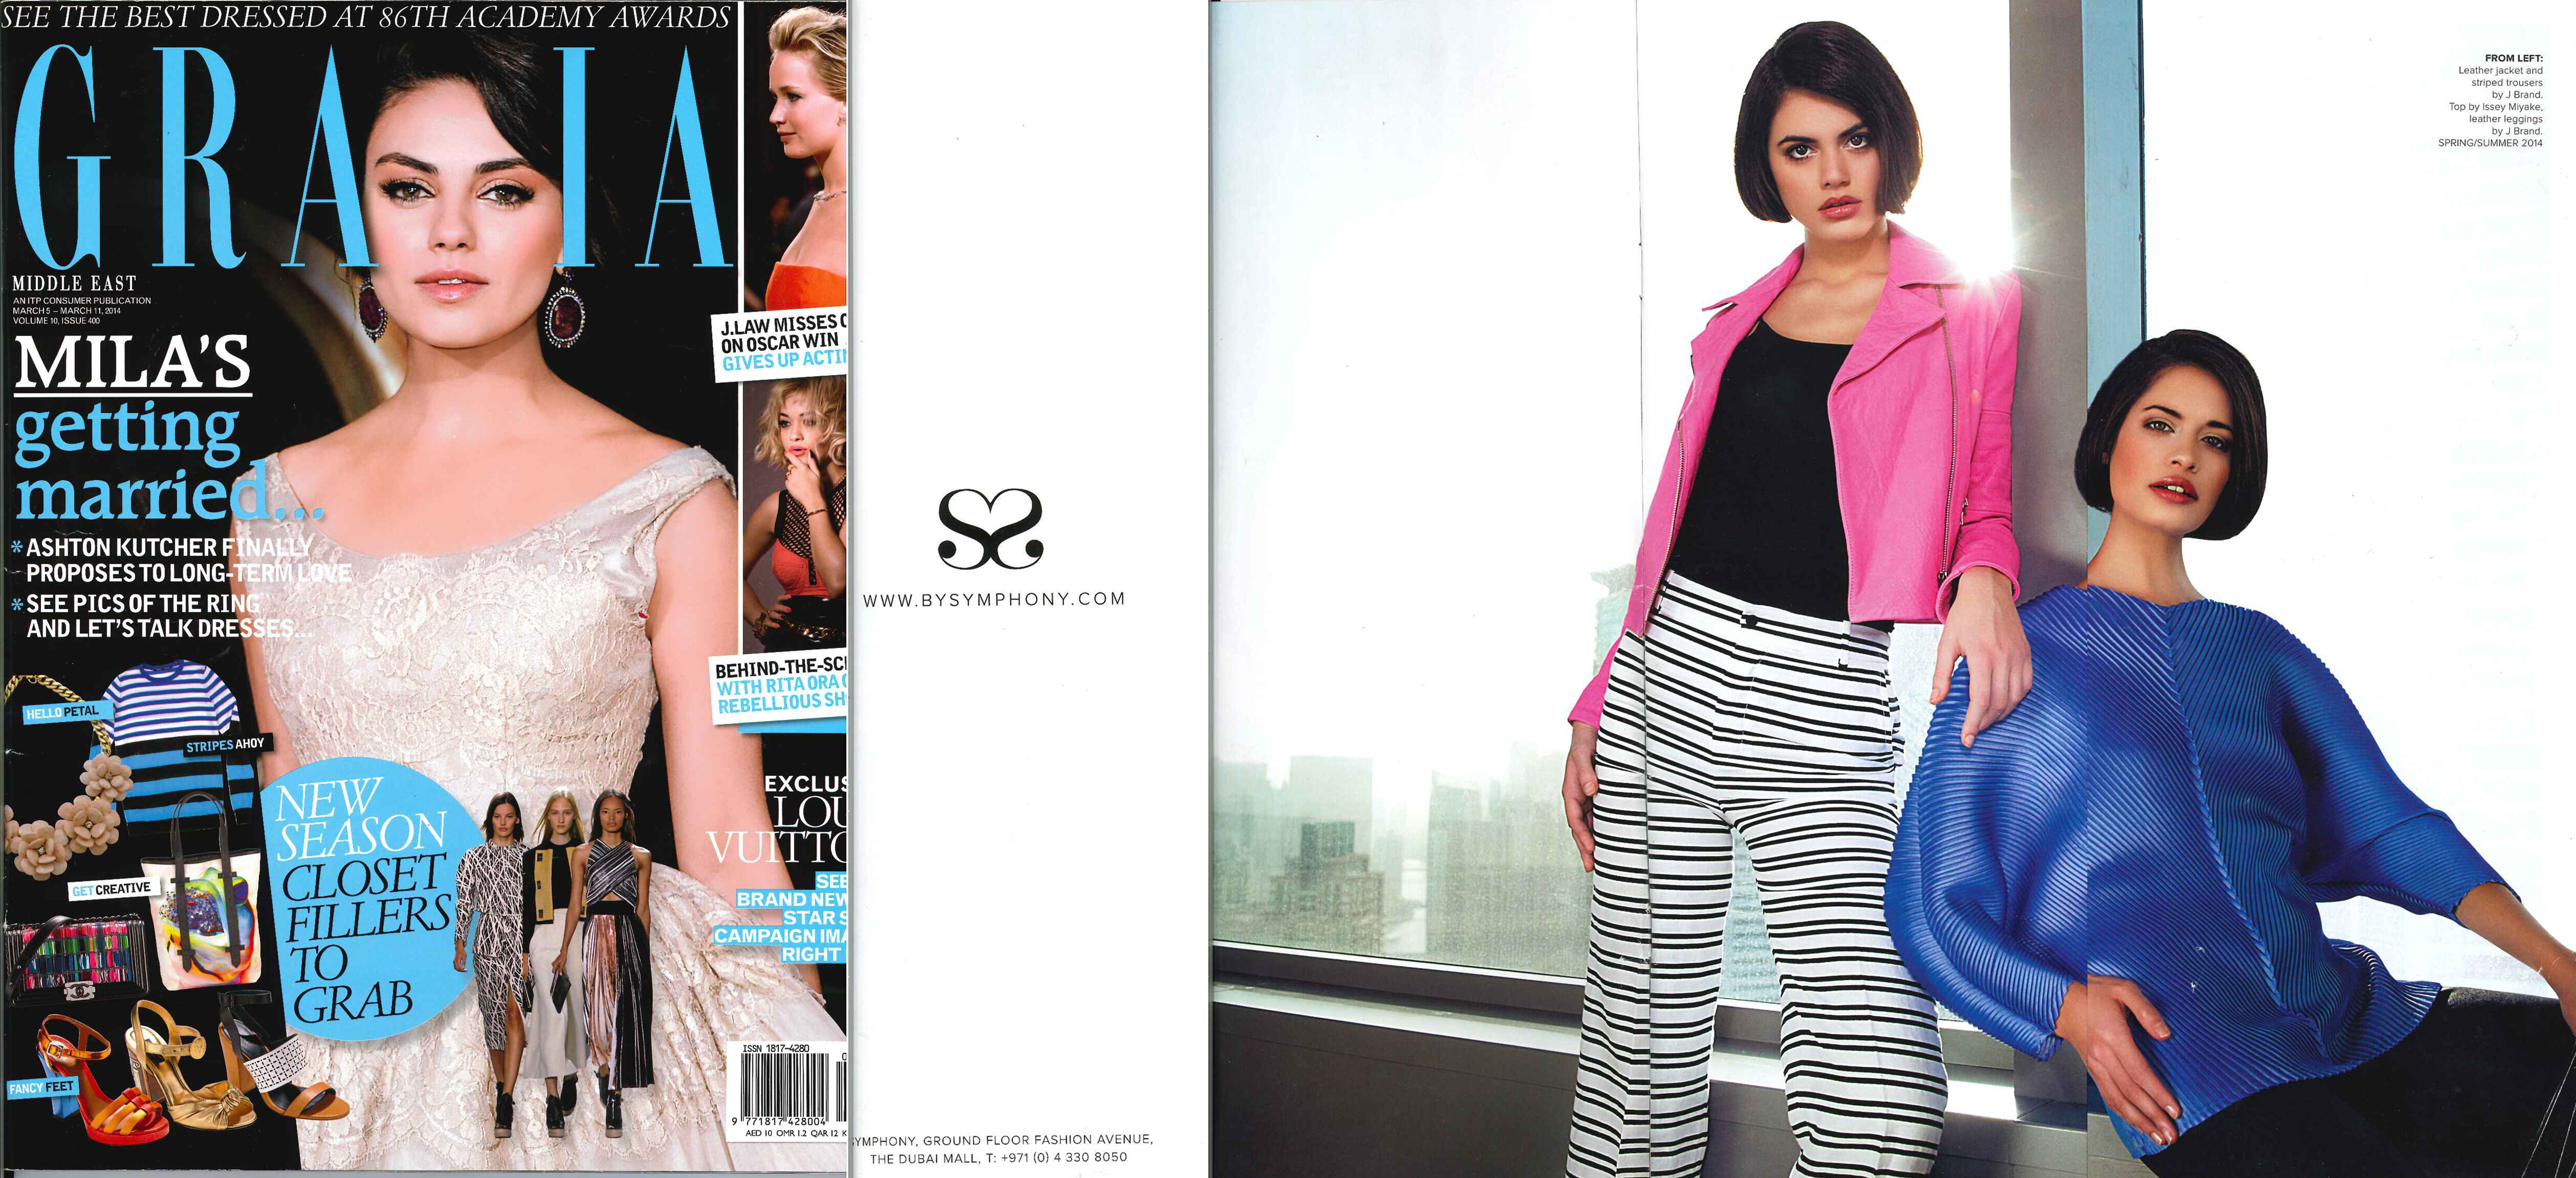 FLC Models & Talents - Catalogue Shoots - Grazia